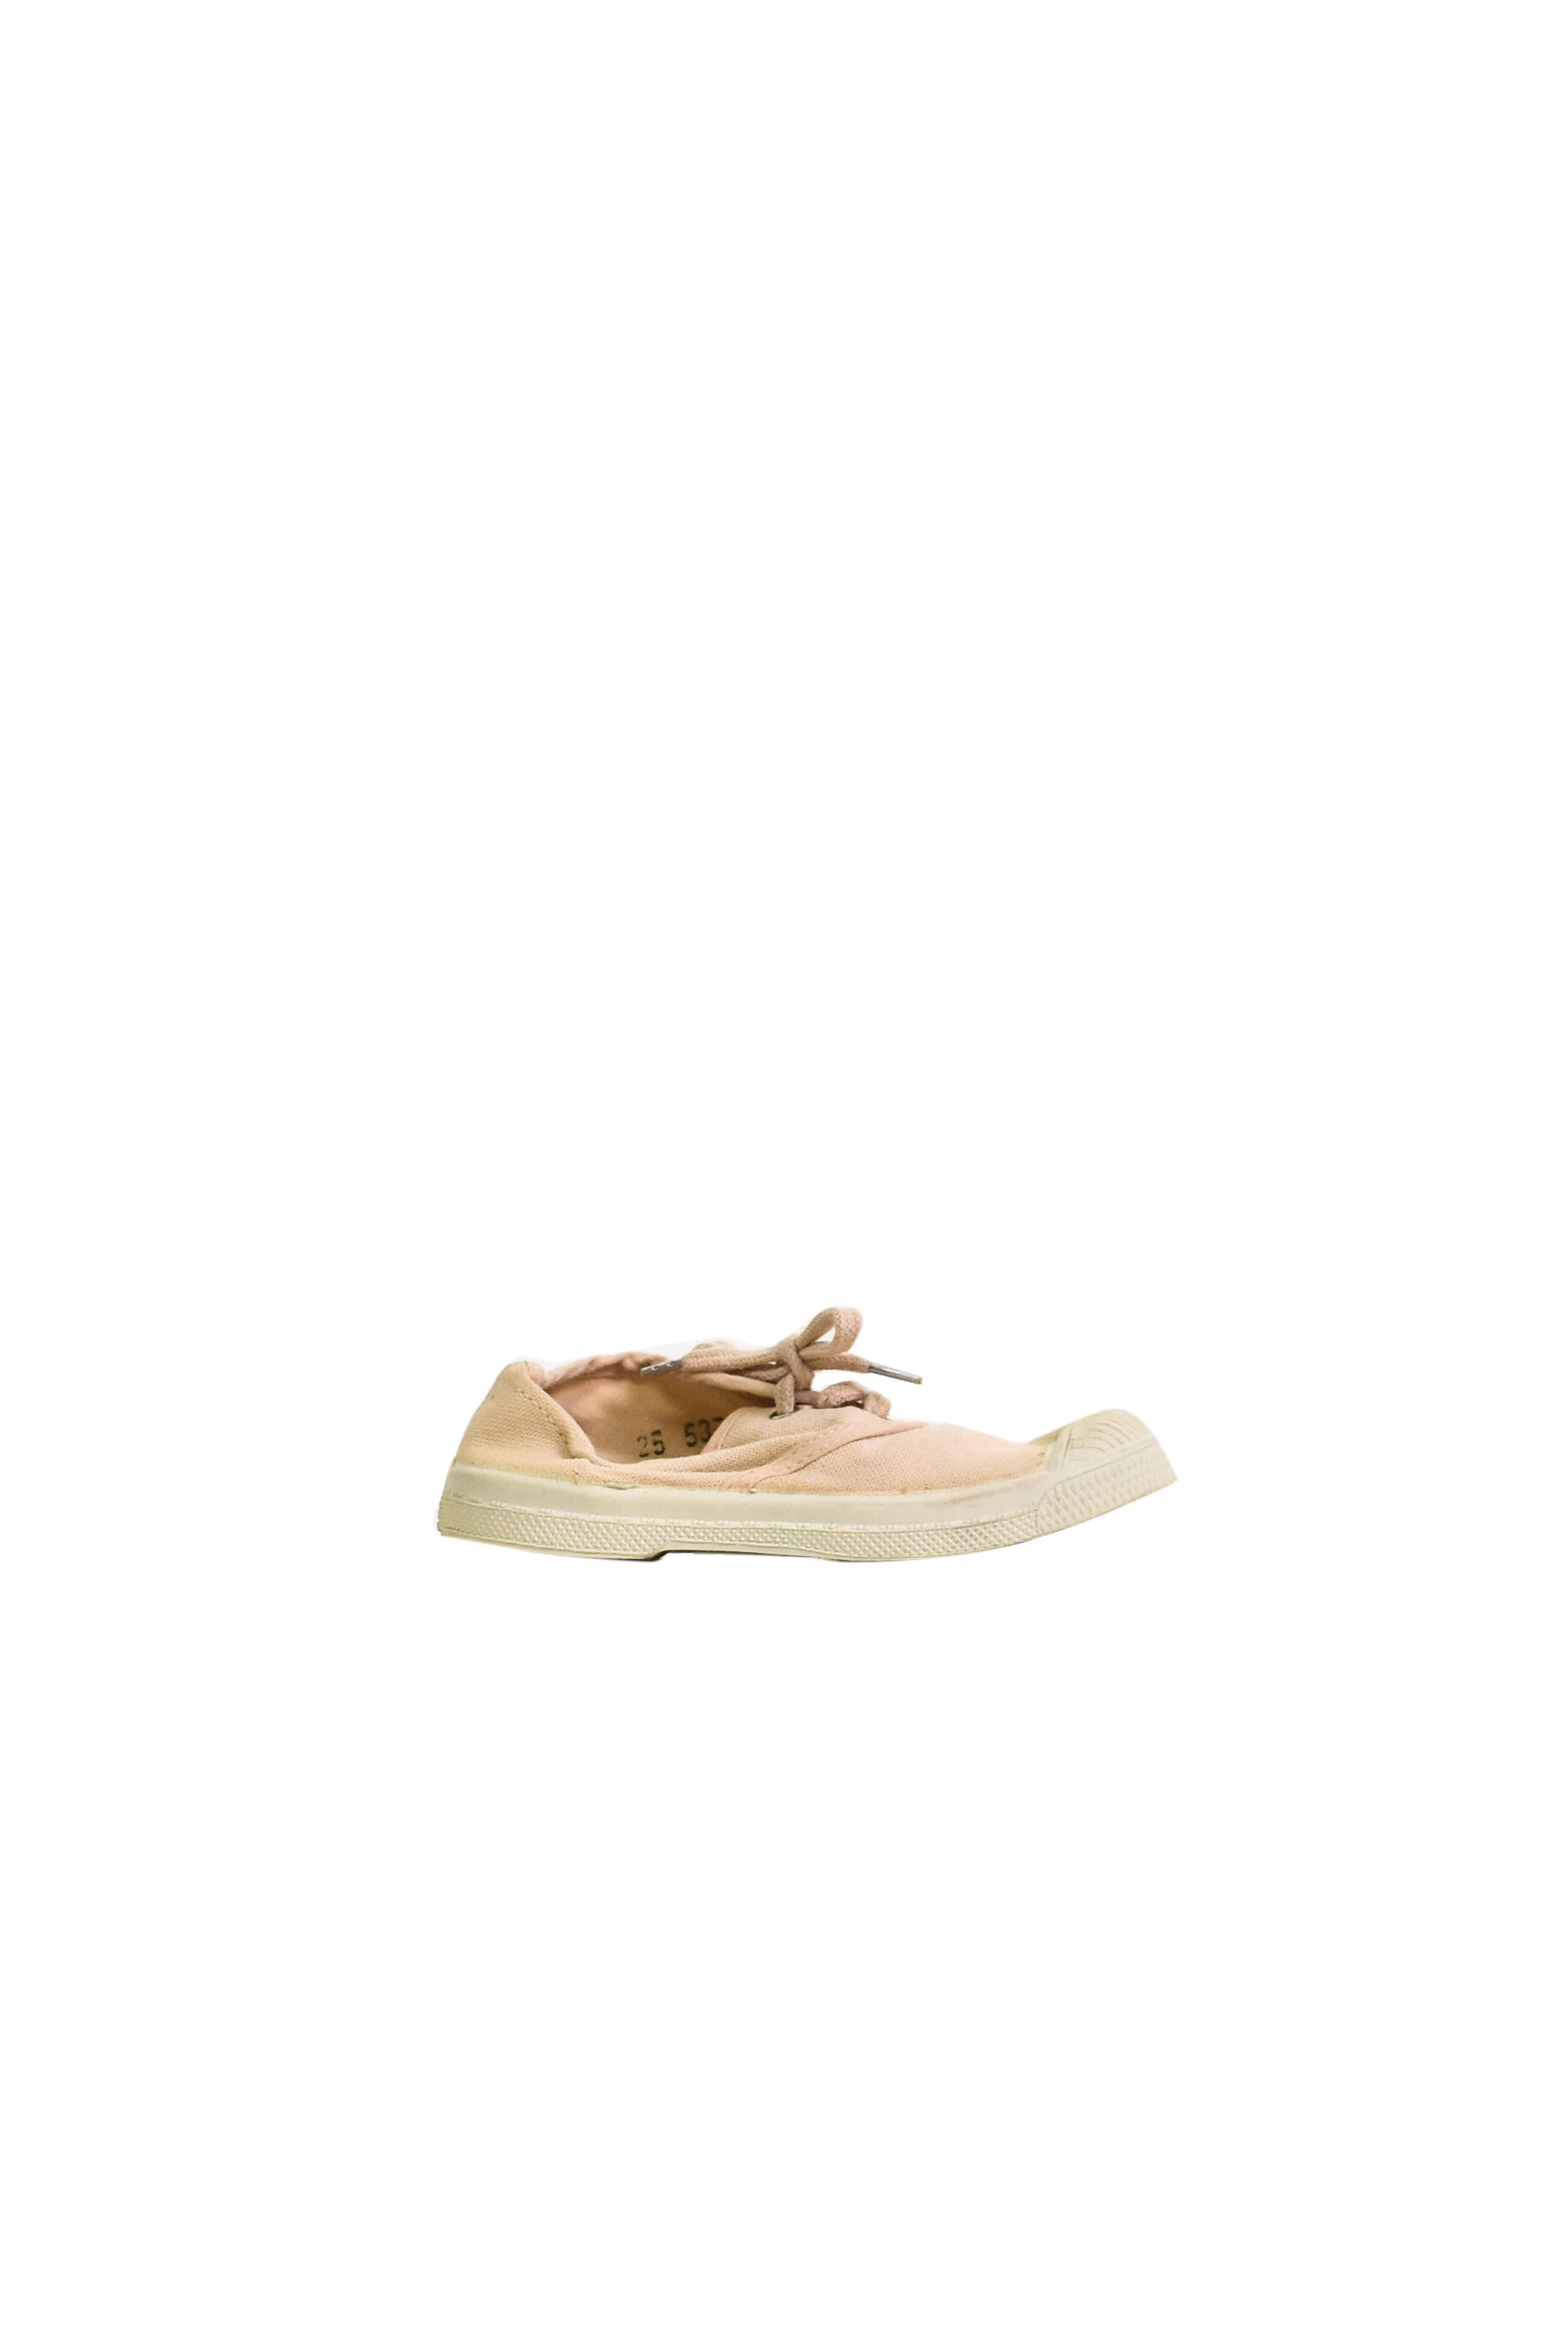 10013768 Bensimon Kids ~ Shoes 3T (EU 25 / US 9) at Retykle